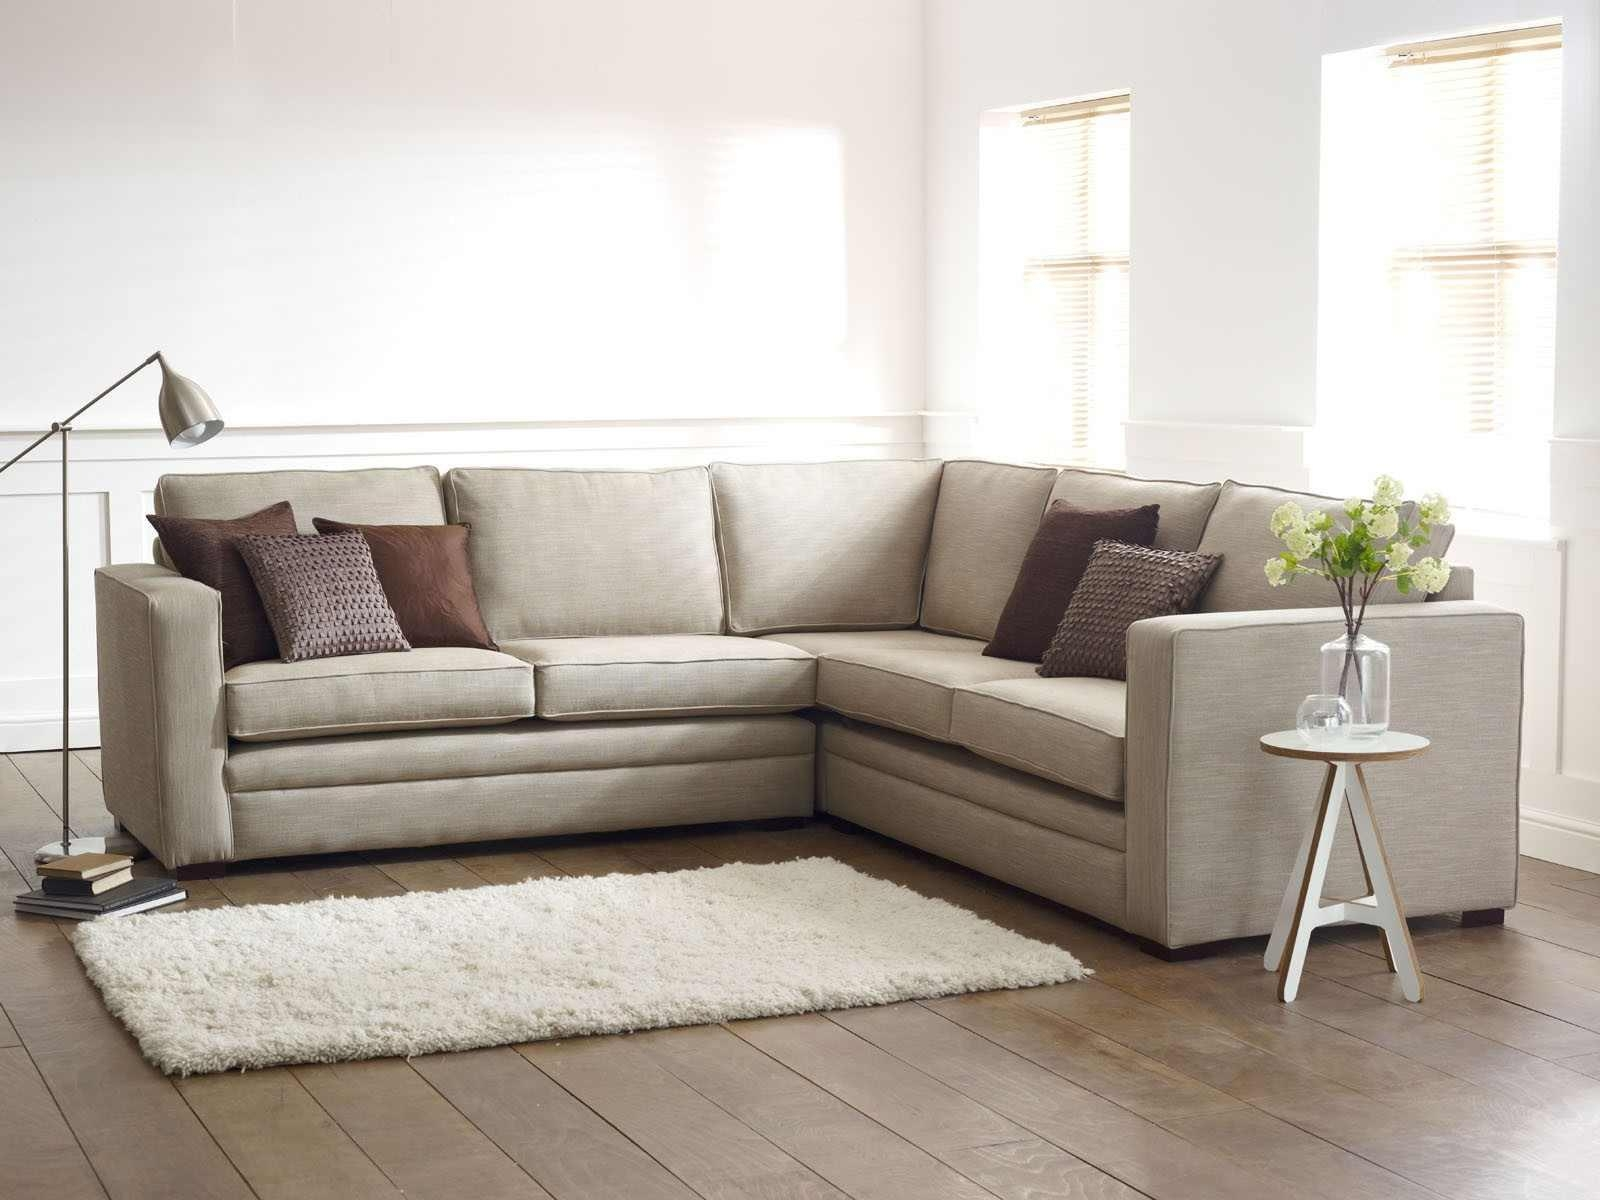 Small L Shaped Couch Ikea – Creditrestore In Small L Shaped Sofas (Image 13 of 20)